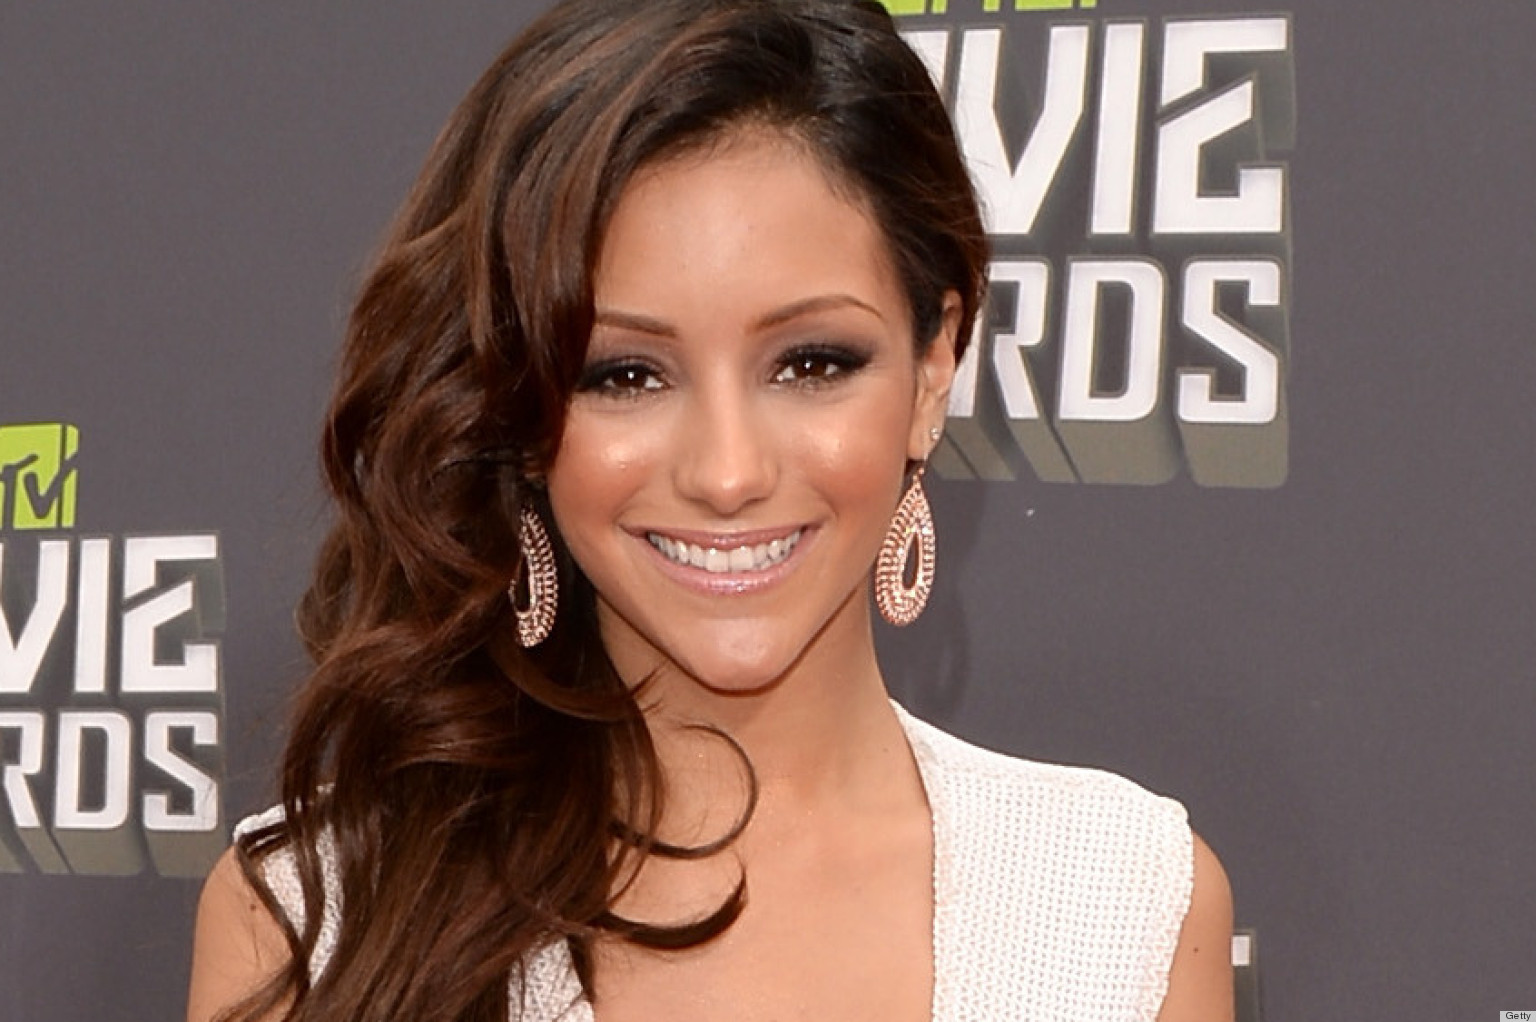 PHOTOS: Melanie Iglesias' Plunging Dress At The MTV Movie Awards Is A Daring Choice